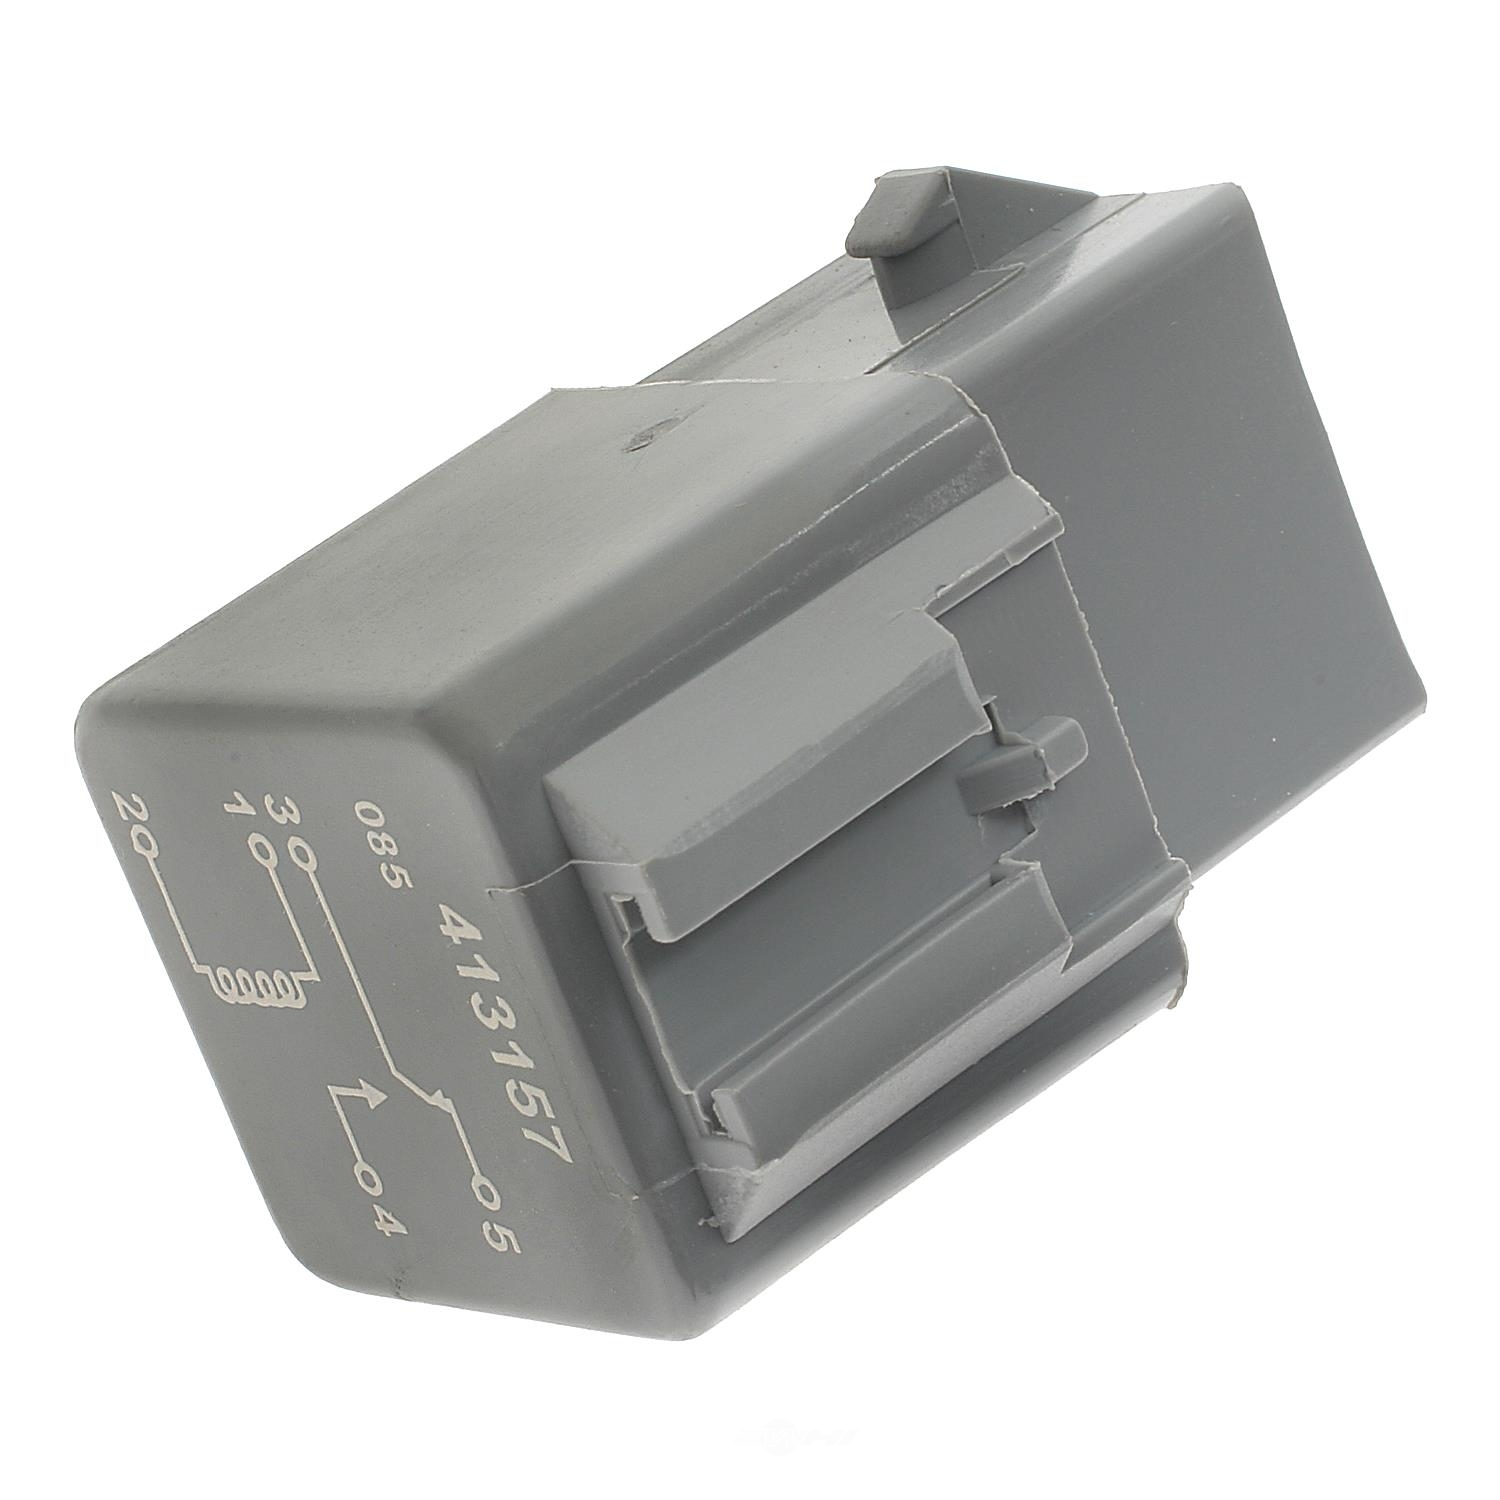 STANDARD T-SERIES - Power Steering Relay - STT RY46T